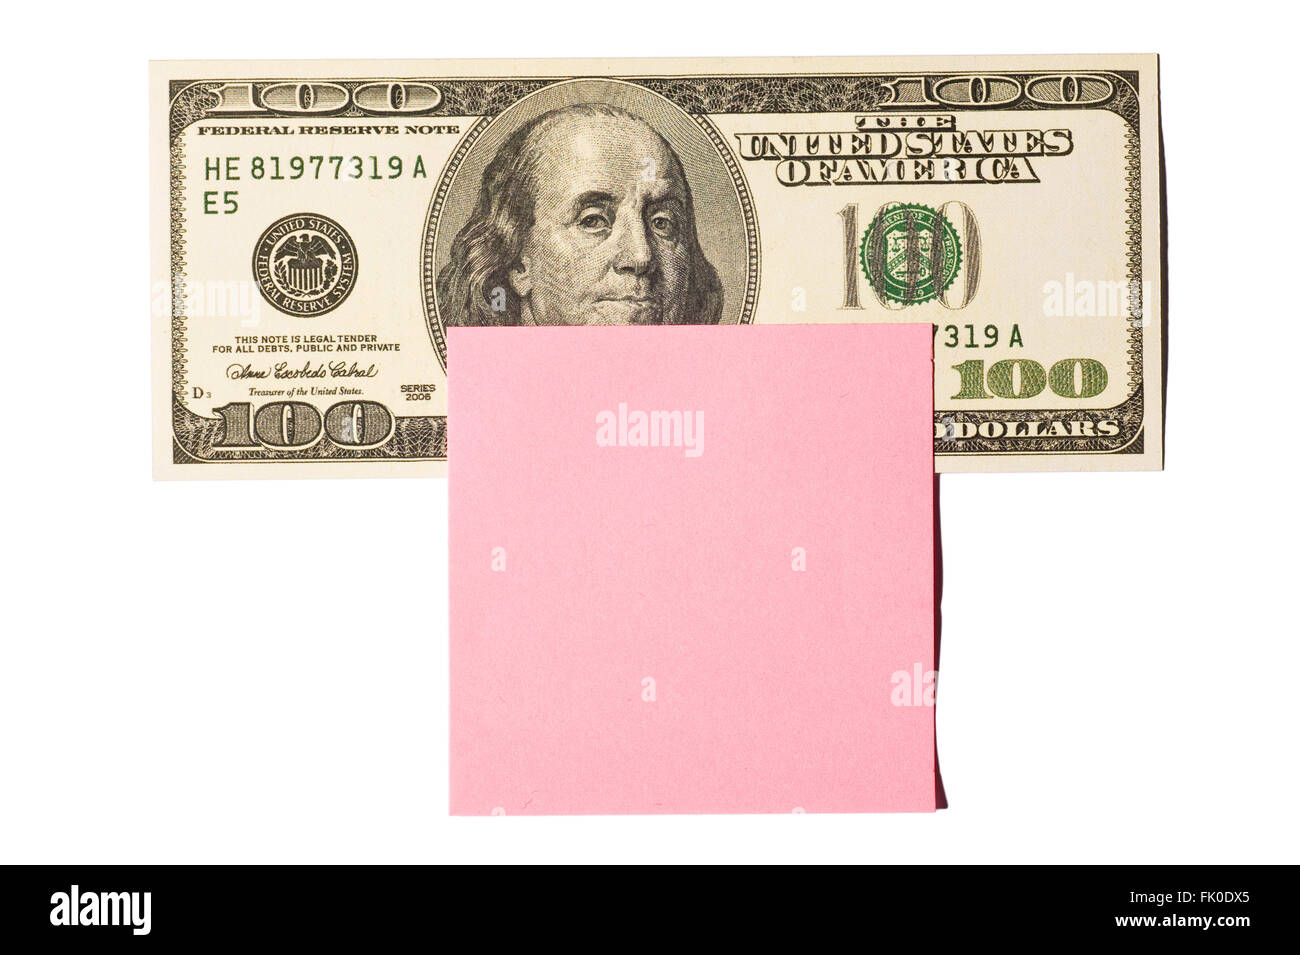 Hundred Dollar Bill With Pink Post-it Note - Stock Image